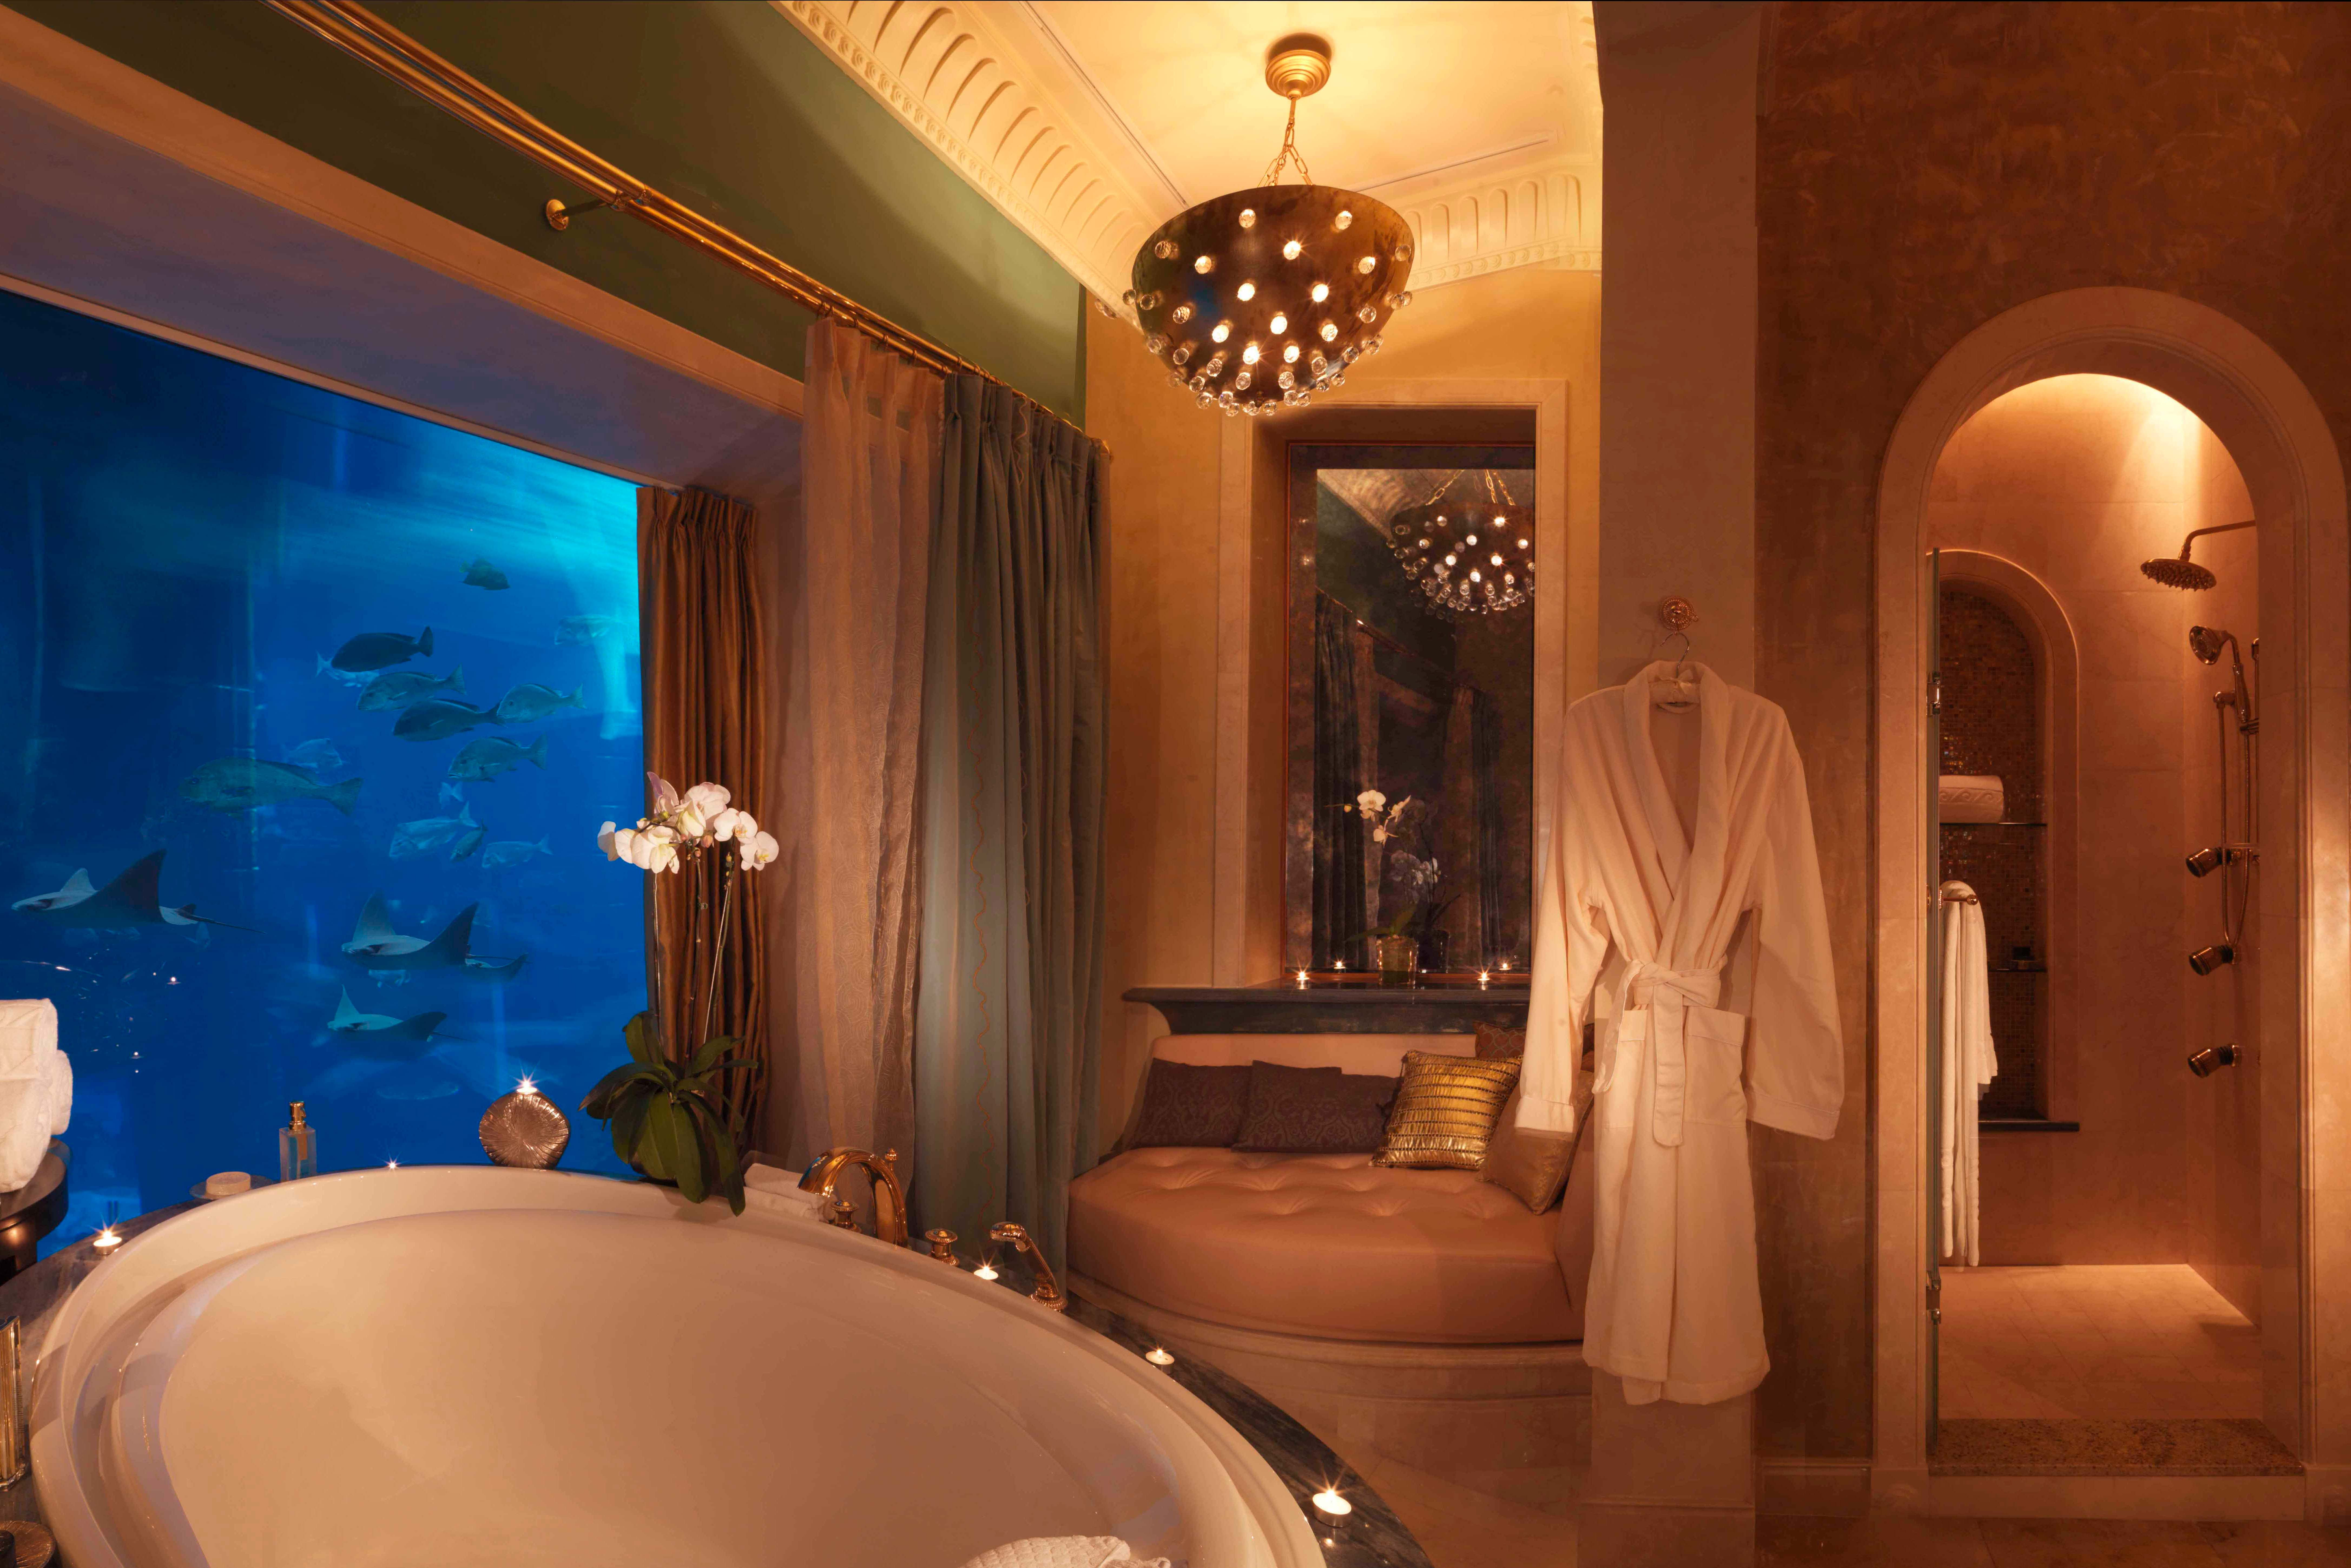 8 of the best hotel bathrooms in the world 9homes for Coolest bathrooms in the world